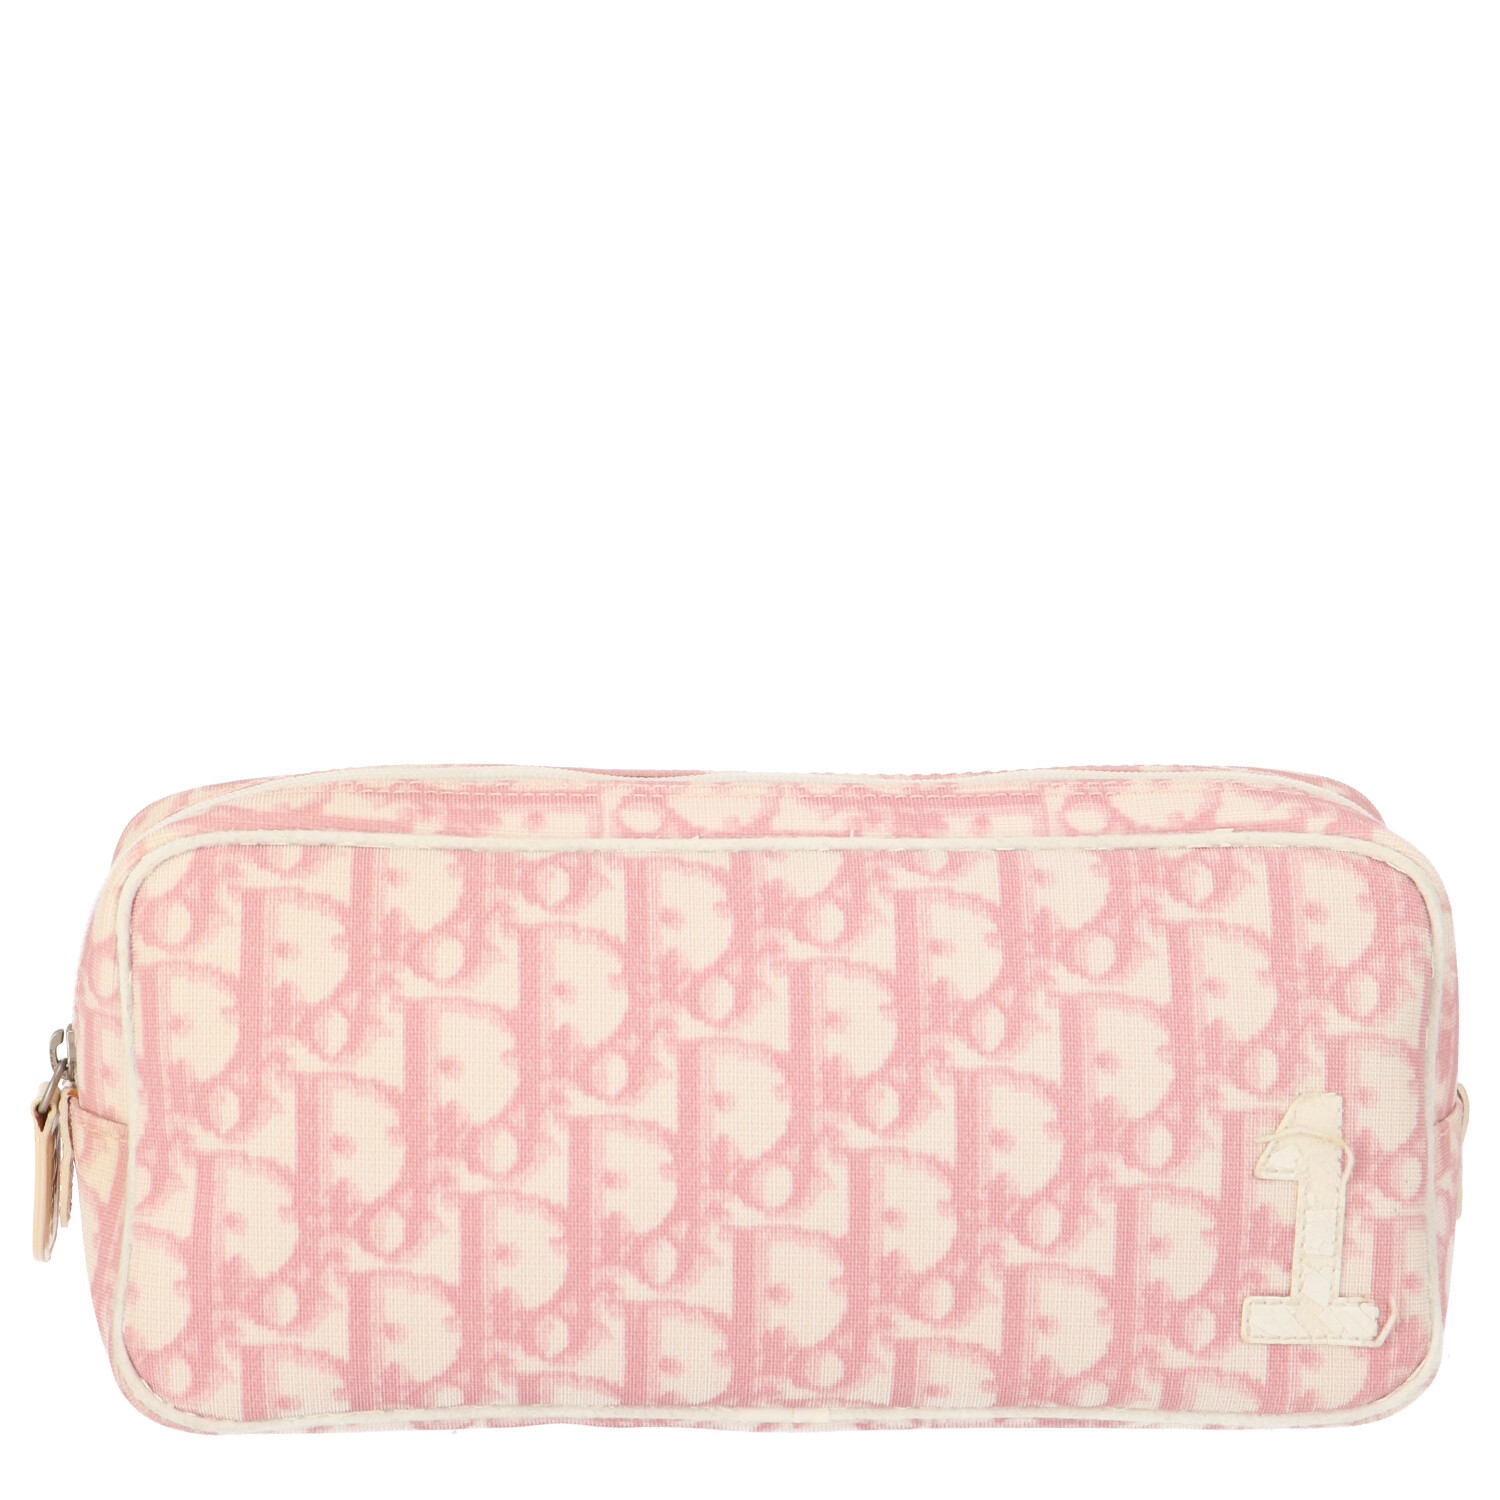 Pink Coated Canvas Pouch